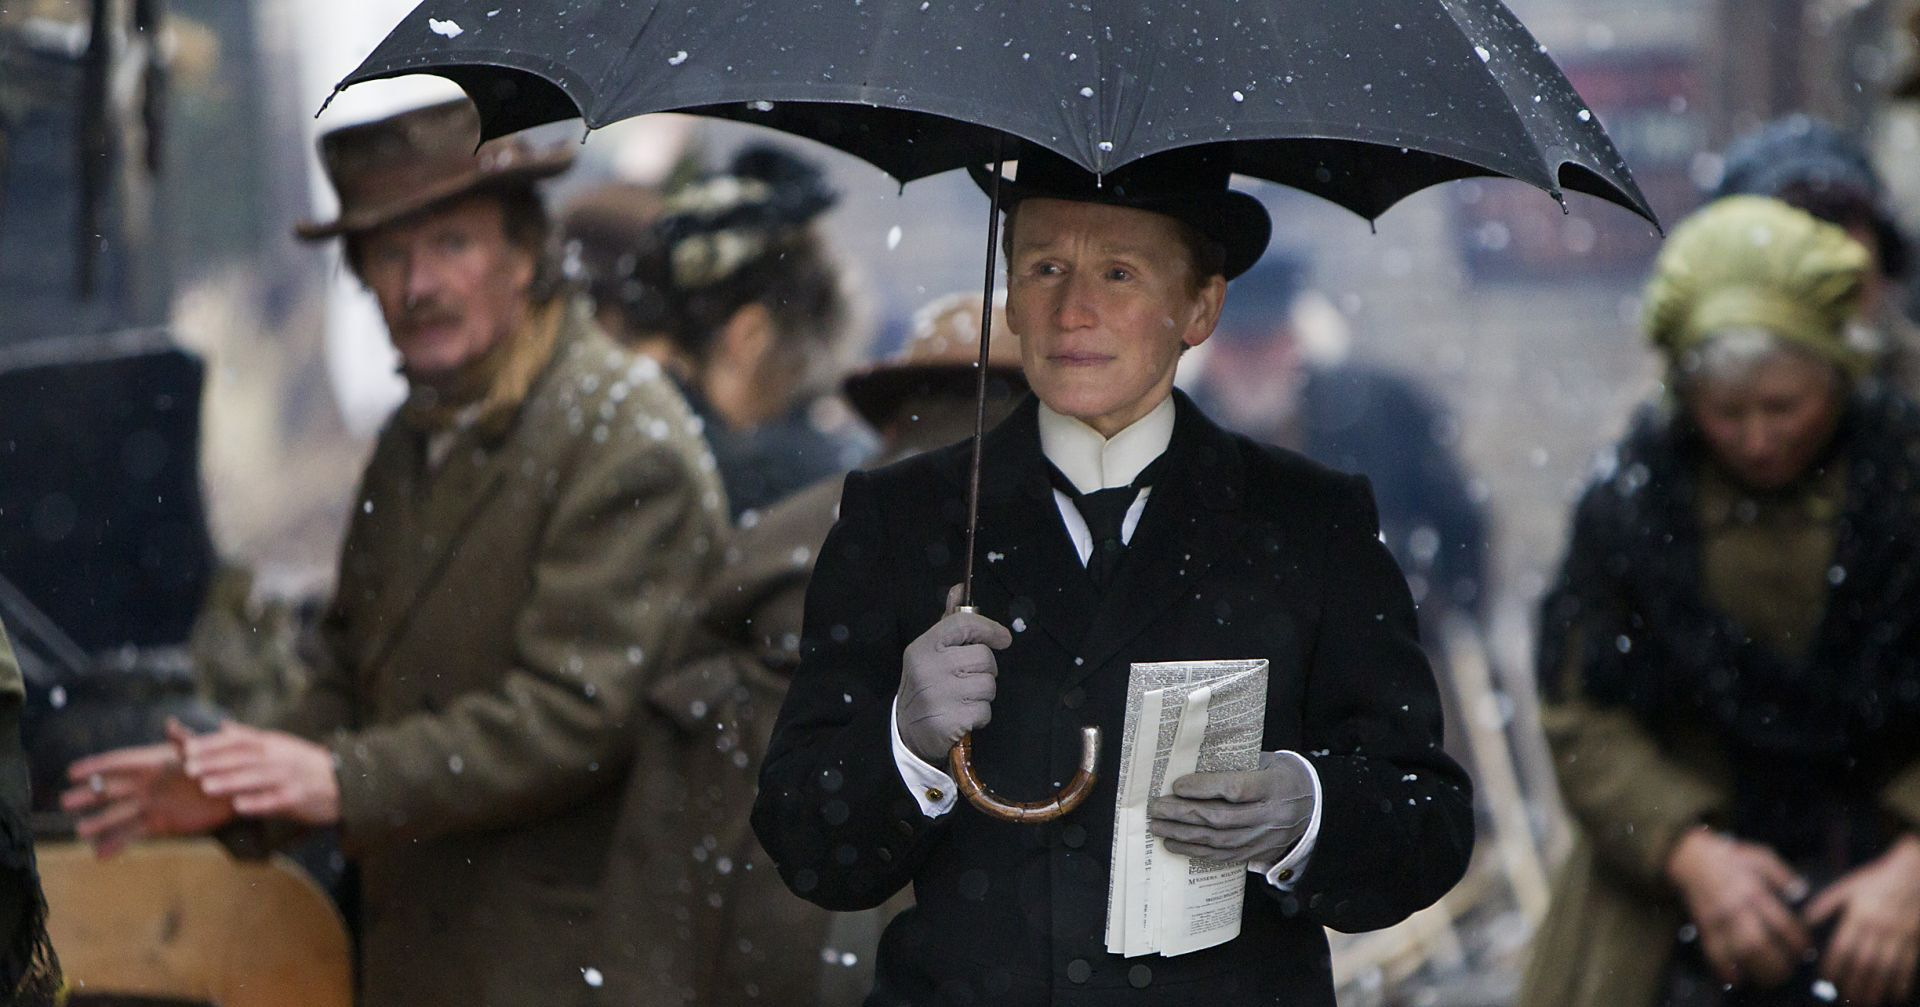 An image from Albert Nobbs